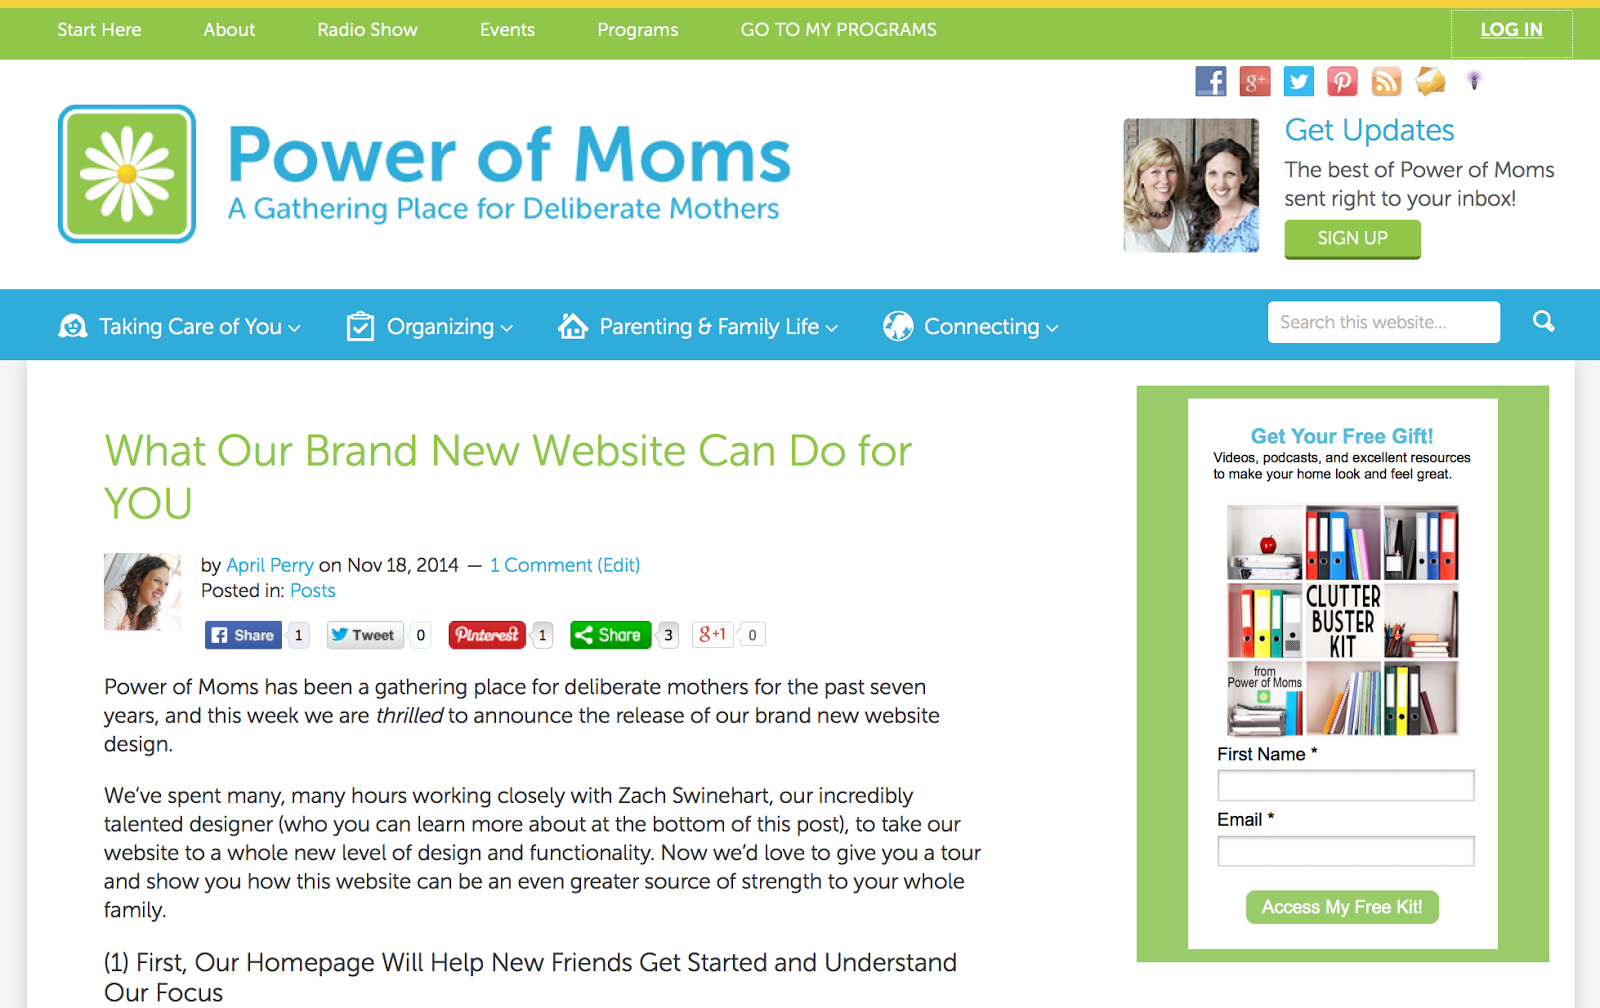 http://powerofmoms.com/2014/11/brand-new-website-can/#